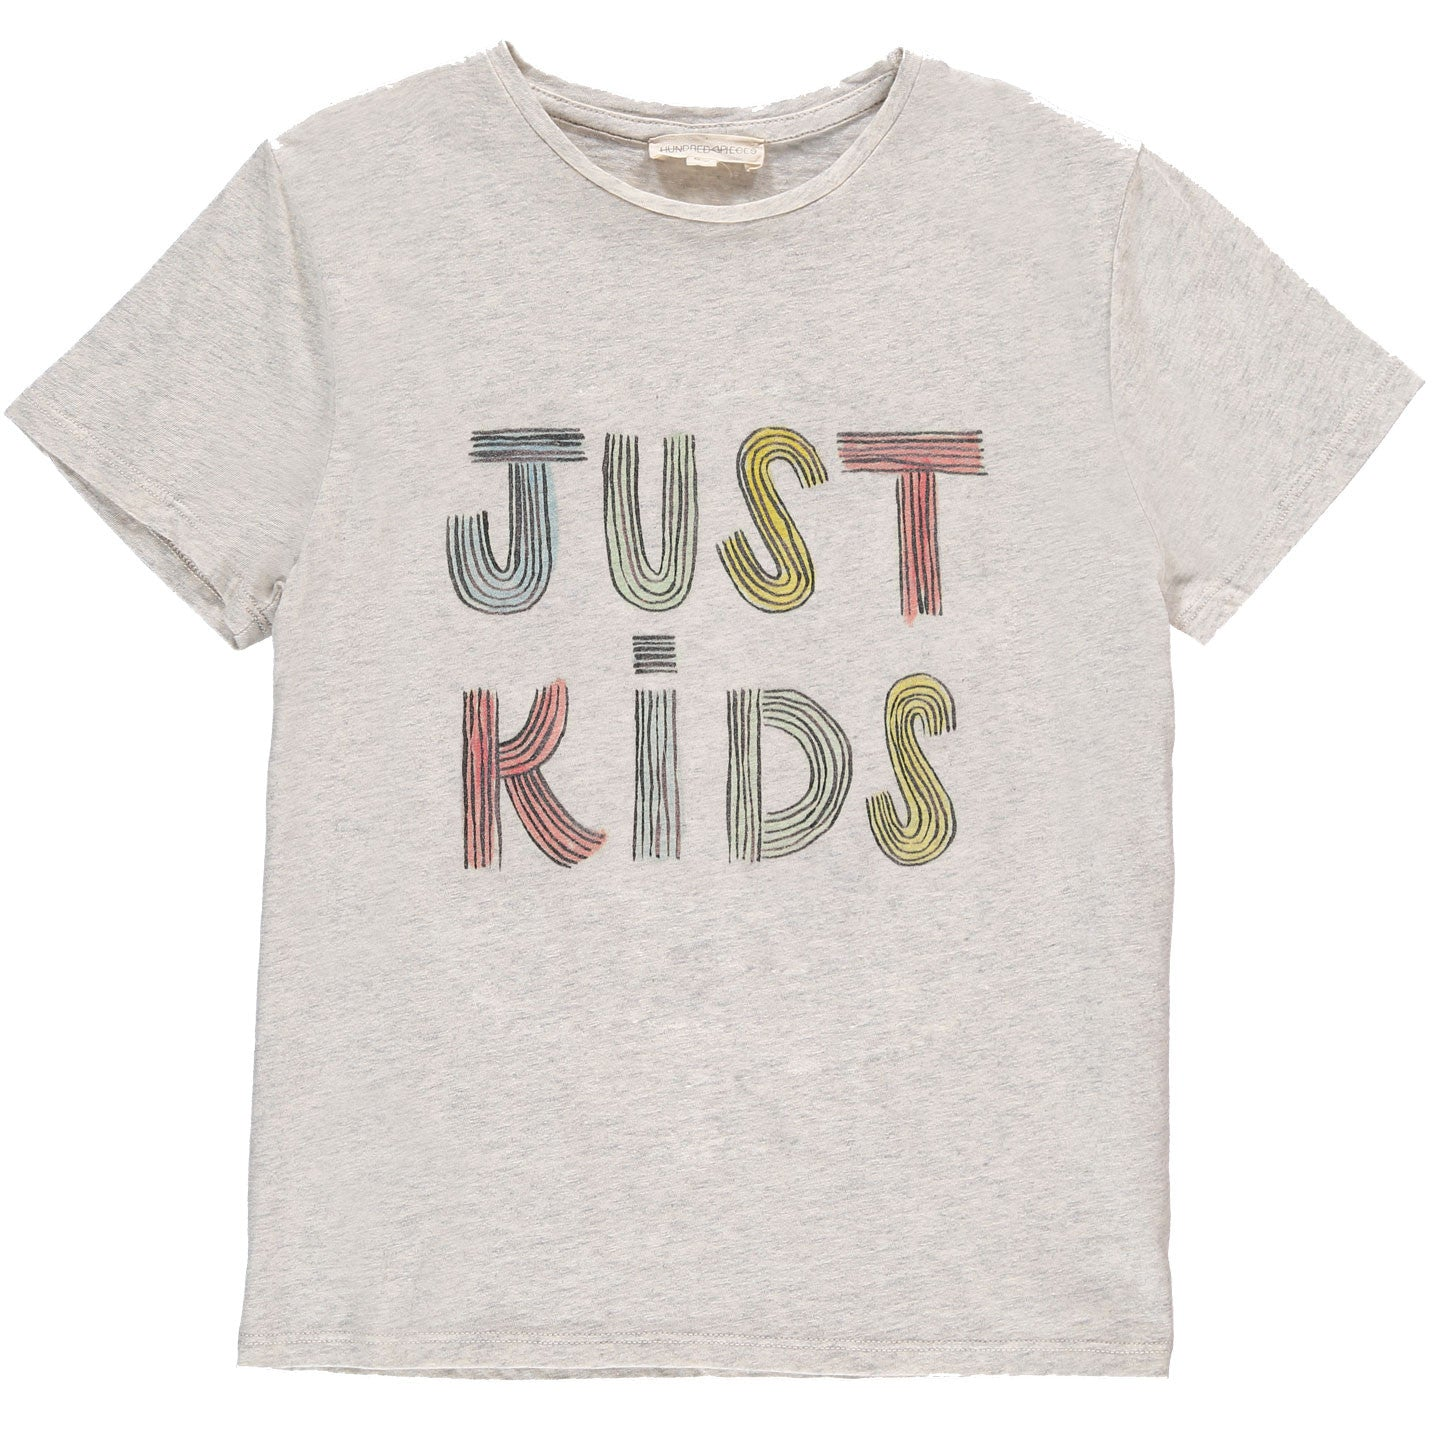 Hundred Pieces Just Kids Tee - Ladida